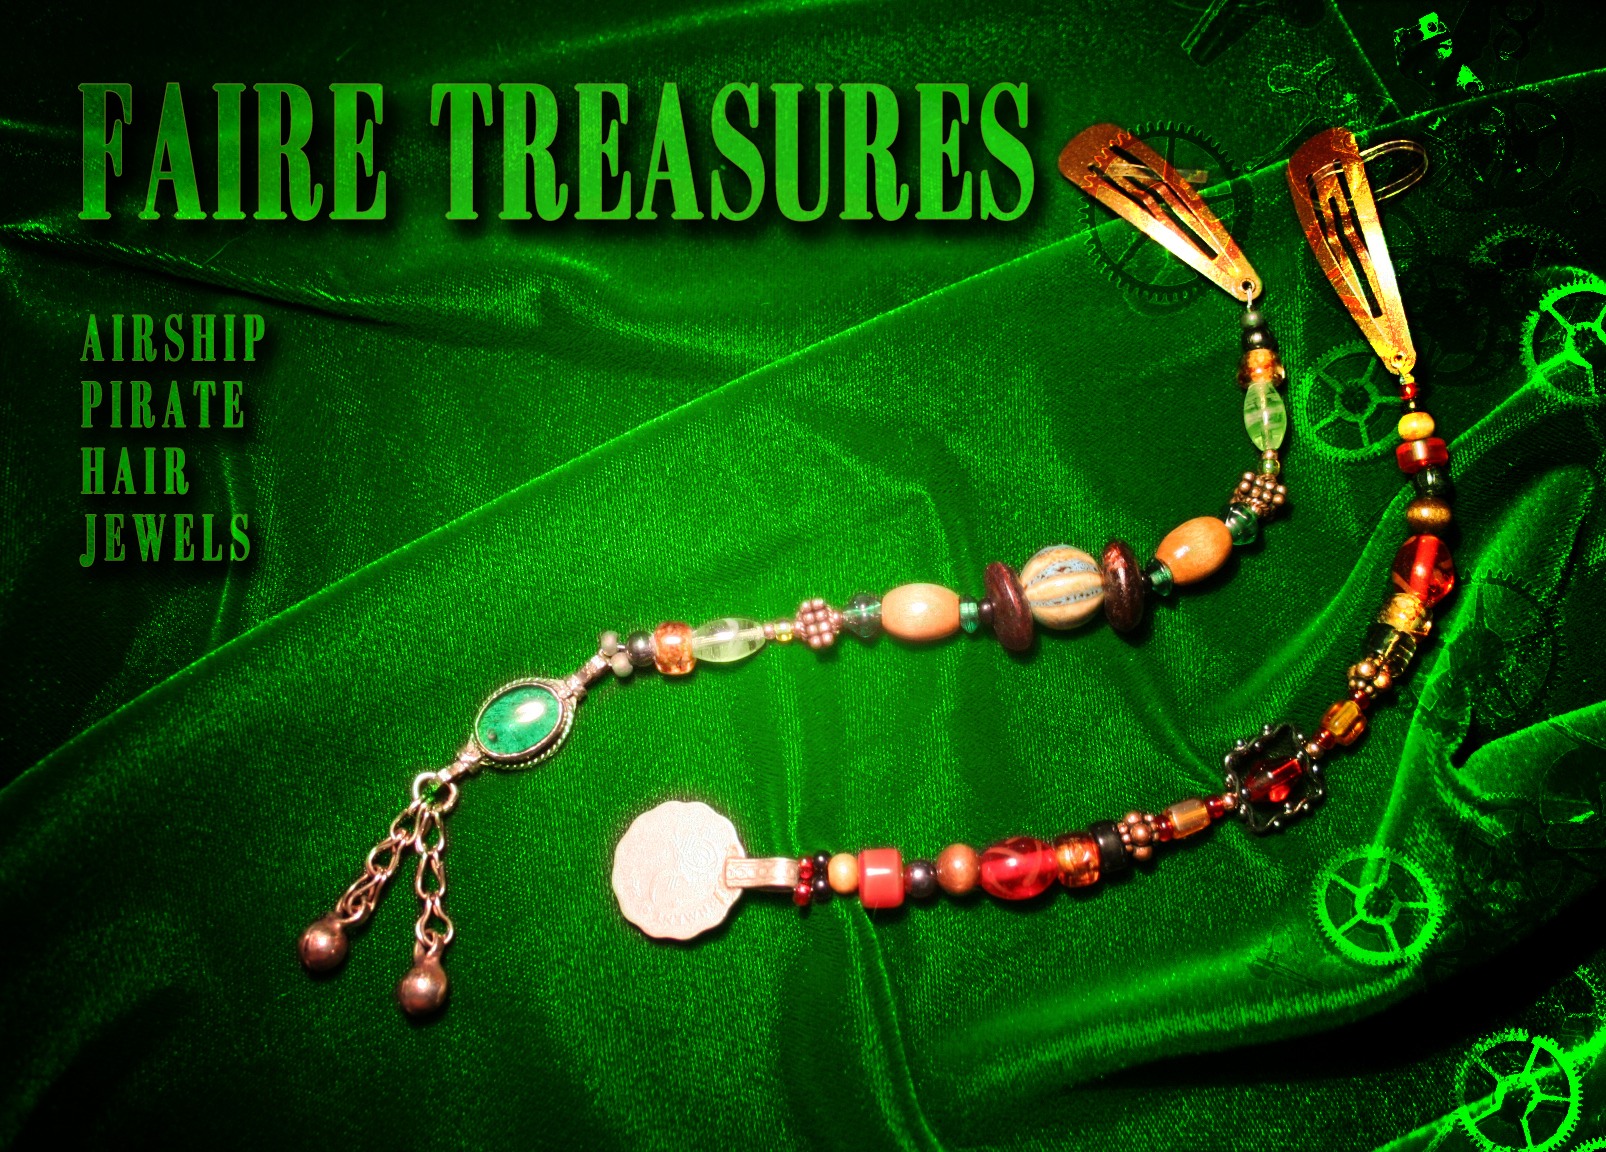 Faire Treasures Pirate Hair Jewels Donation